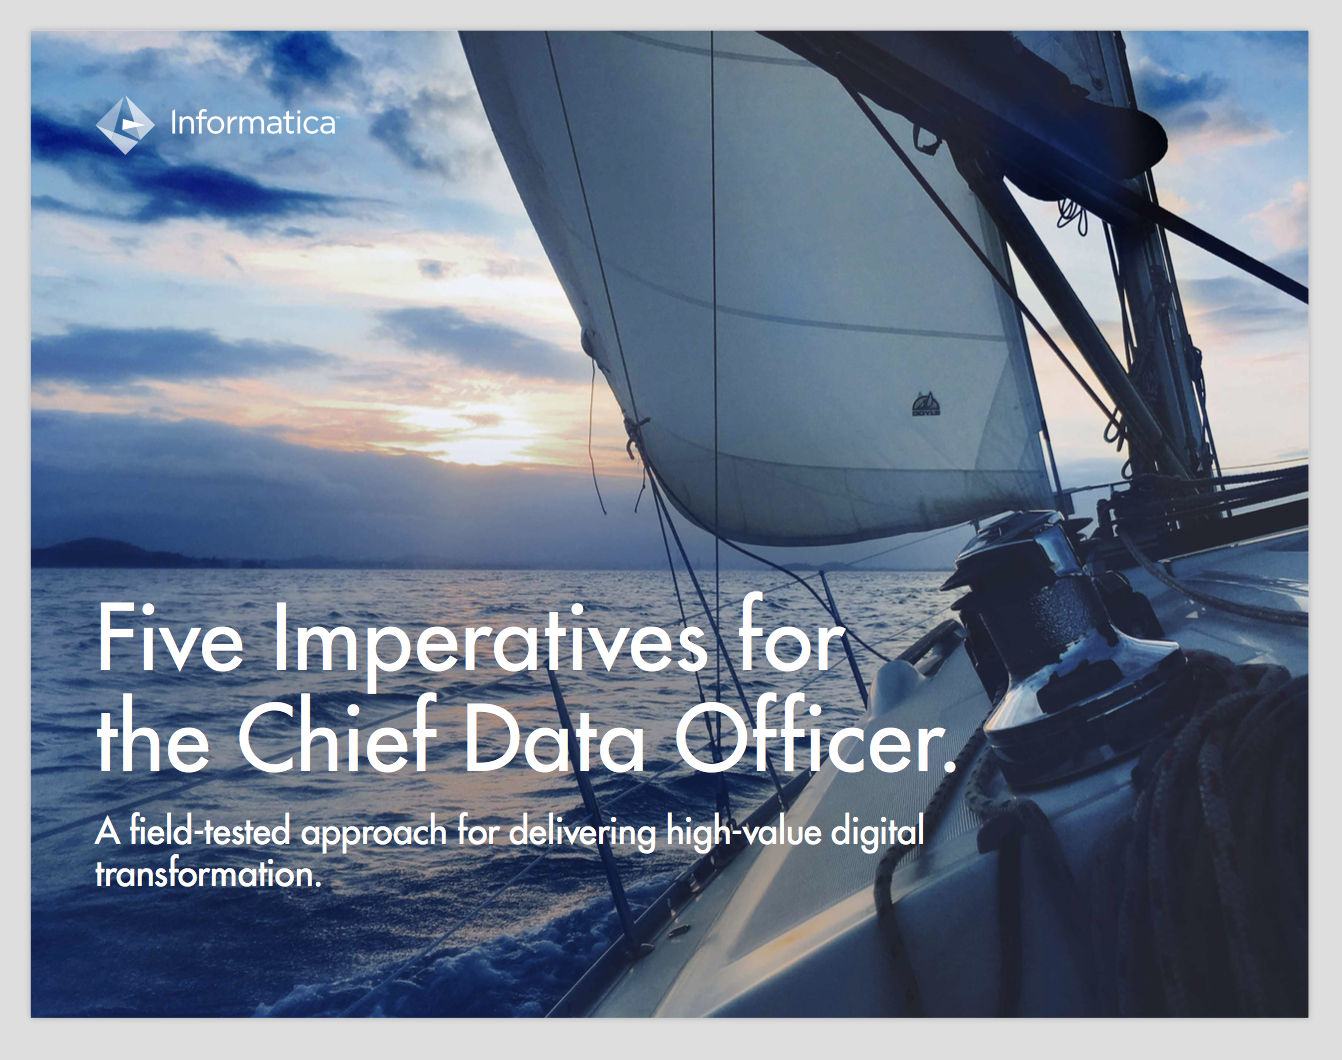 5 Imperatives for the Chief Data Officer